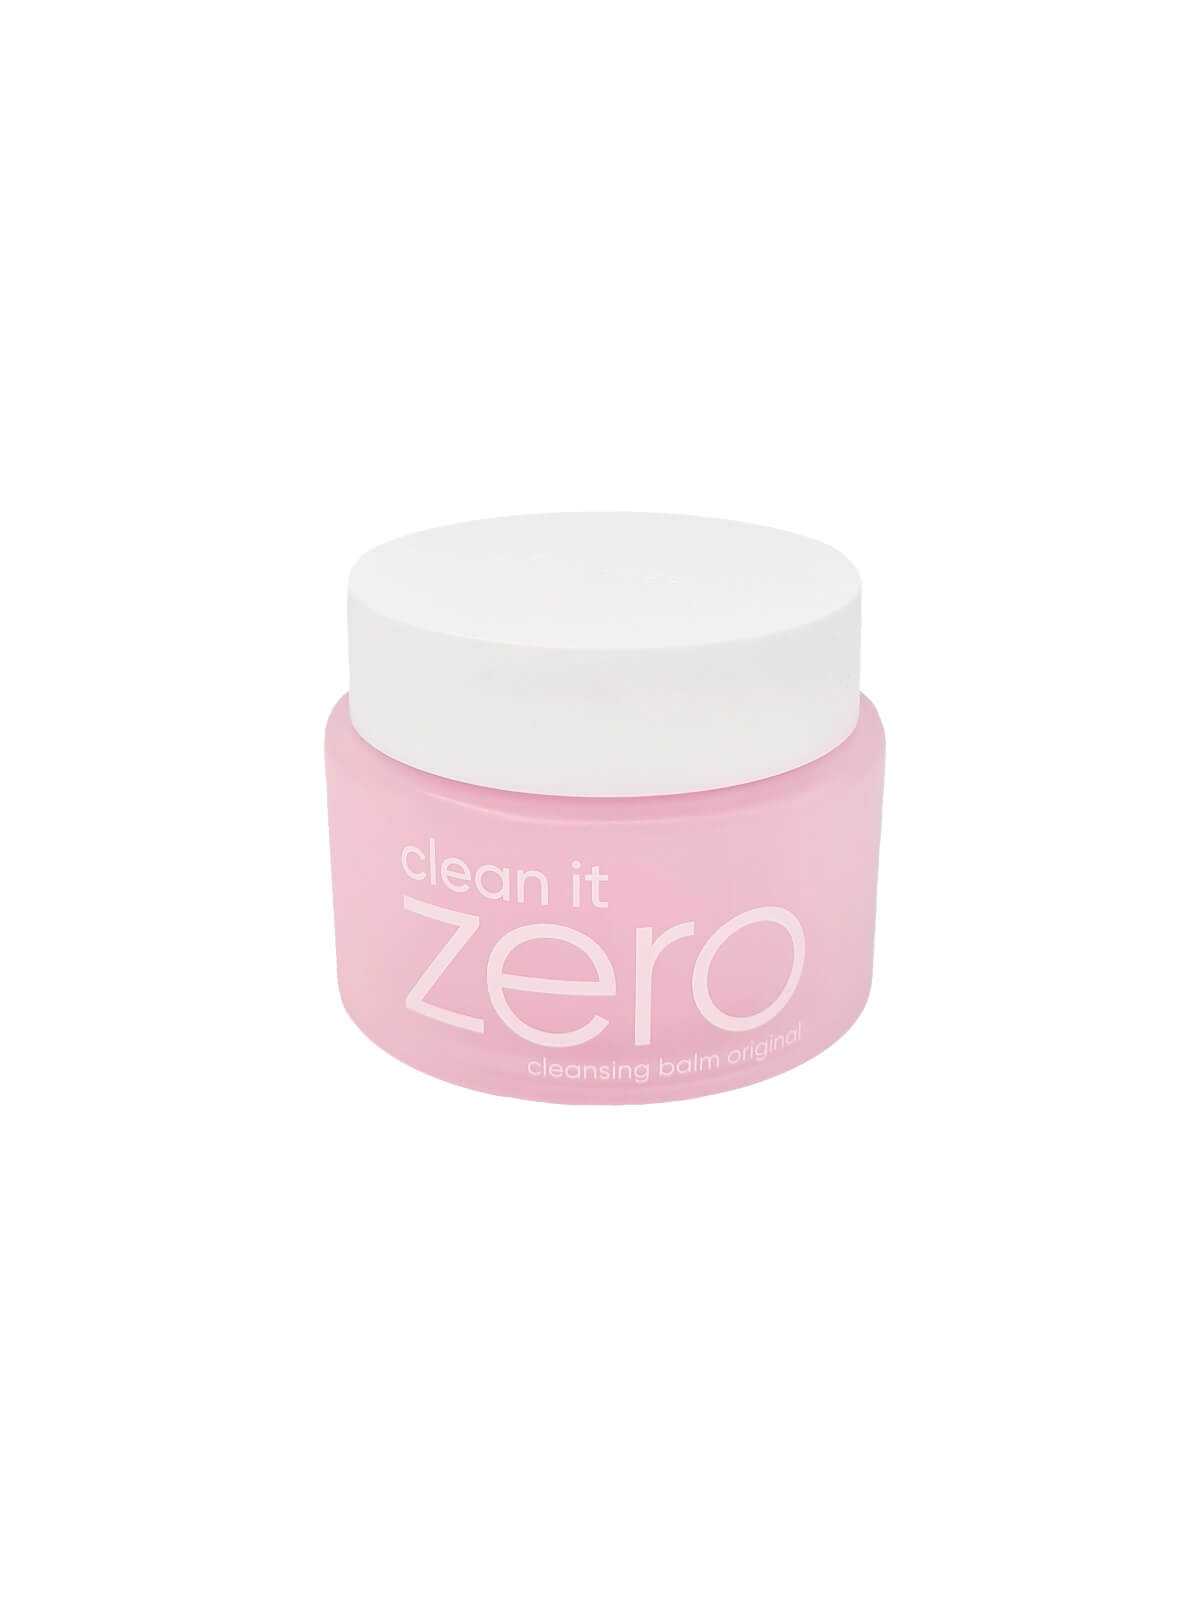 BANILA CO - Clean it Zero Cleansing Balm Original - Seoul Maid